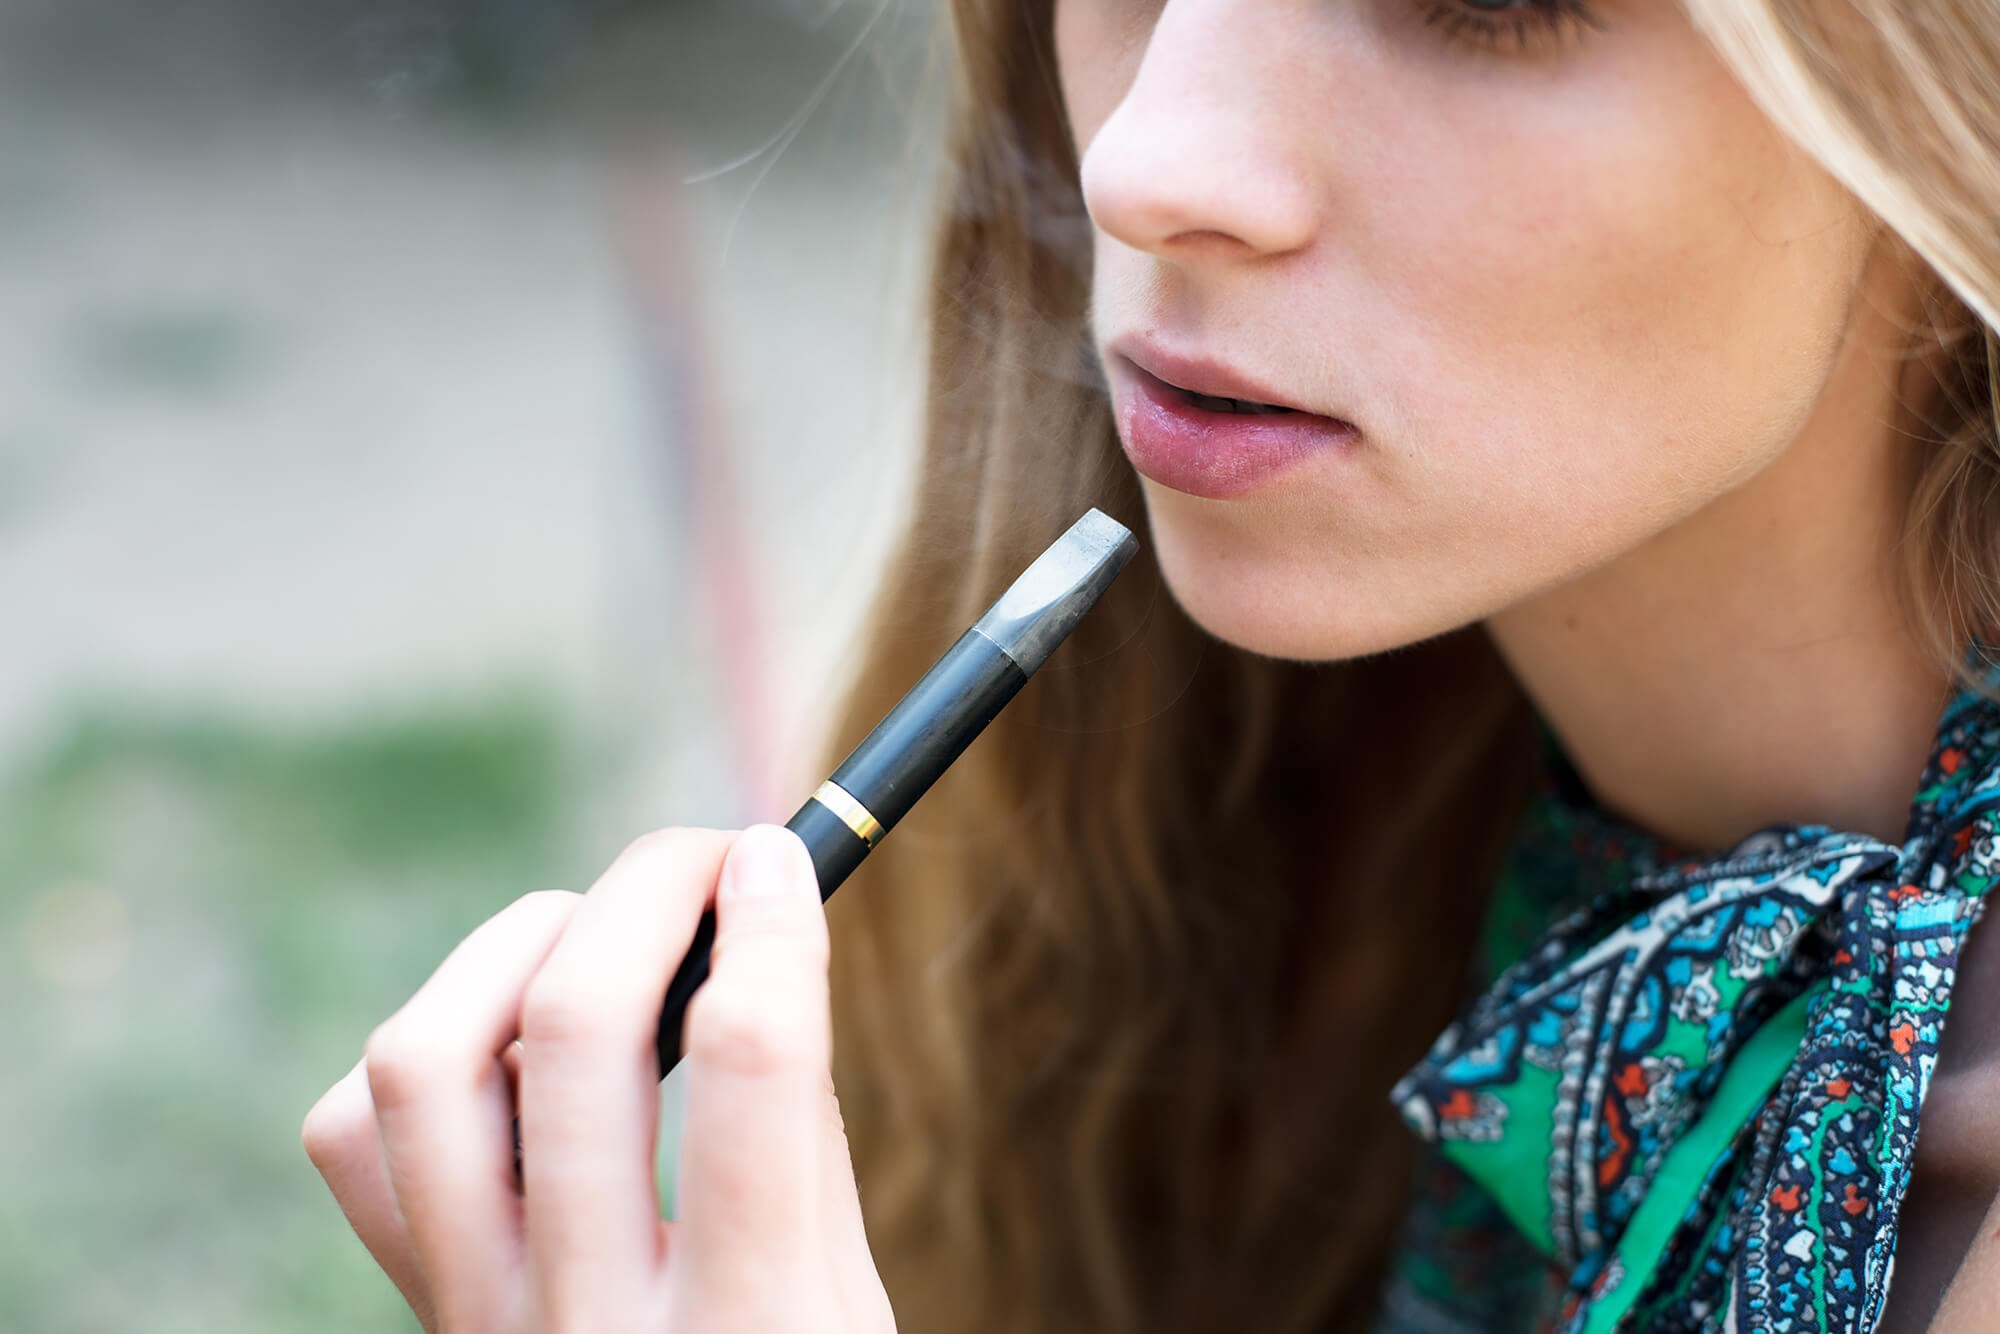 E-cigarette Use Increasing Among Younger, Tobacco-Naïve Adults